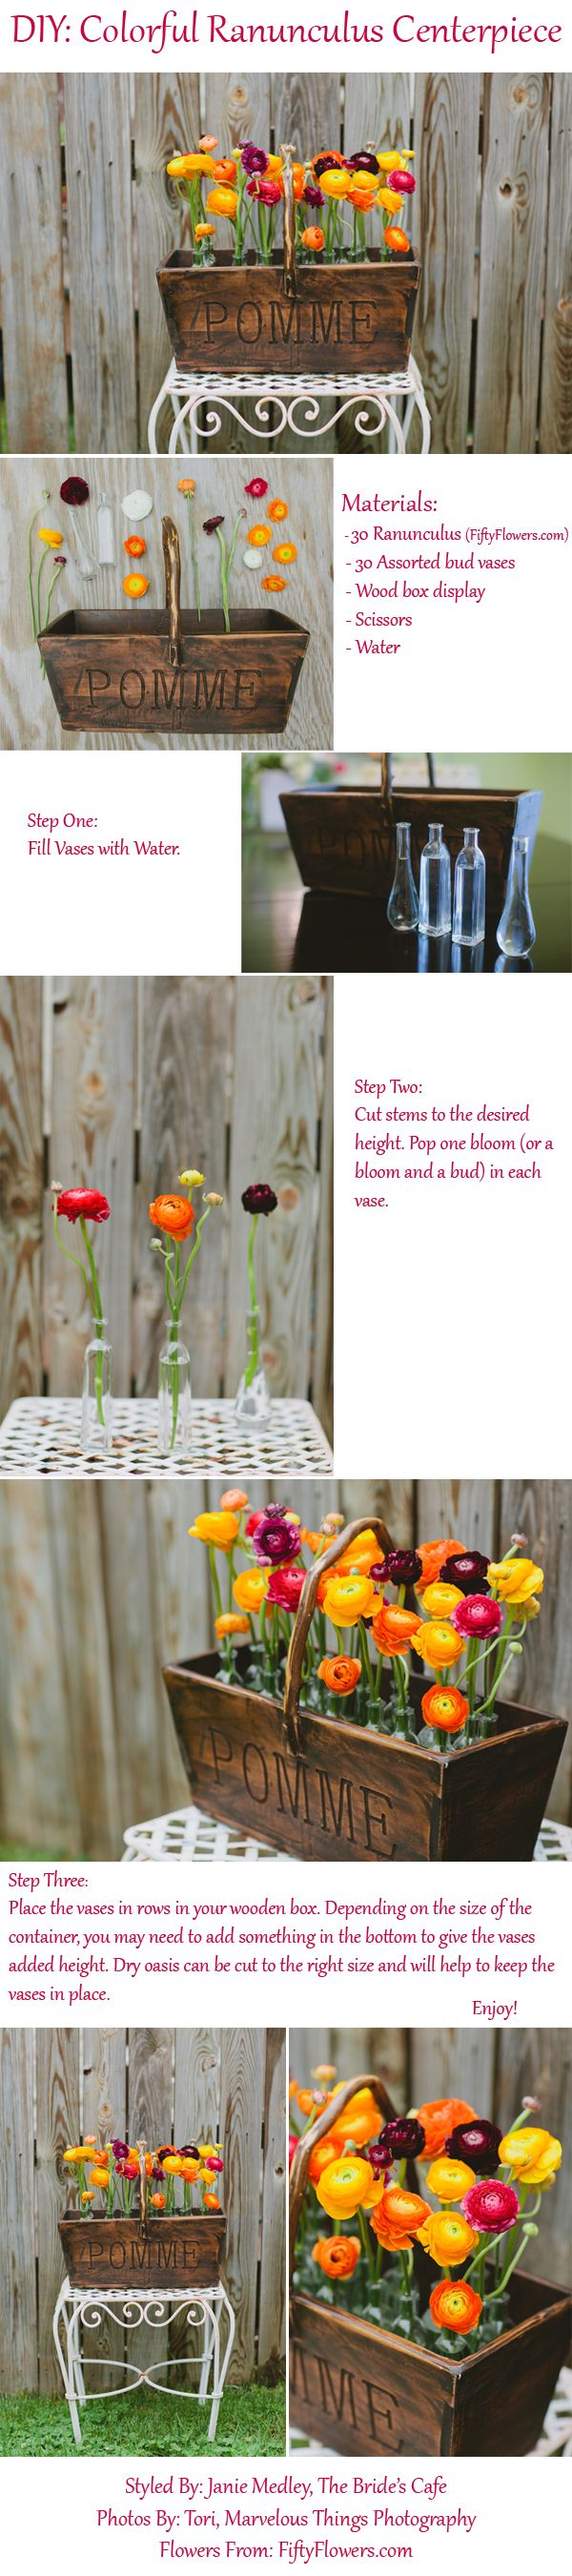 DIY: Ranunculus Centerpiece! This Easy, Colorful Centerpiece will add Pops of Bright Color to any wedding or event!